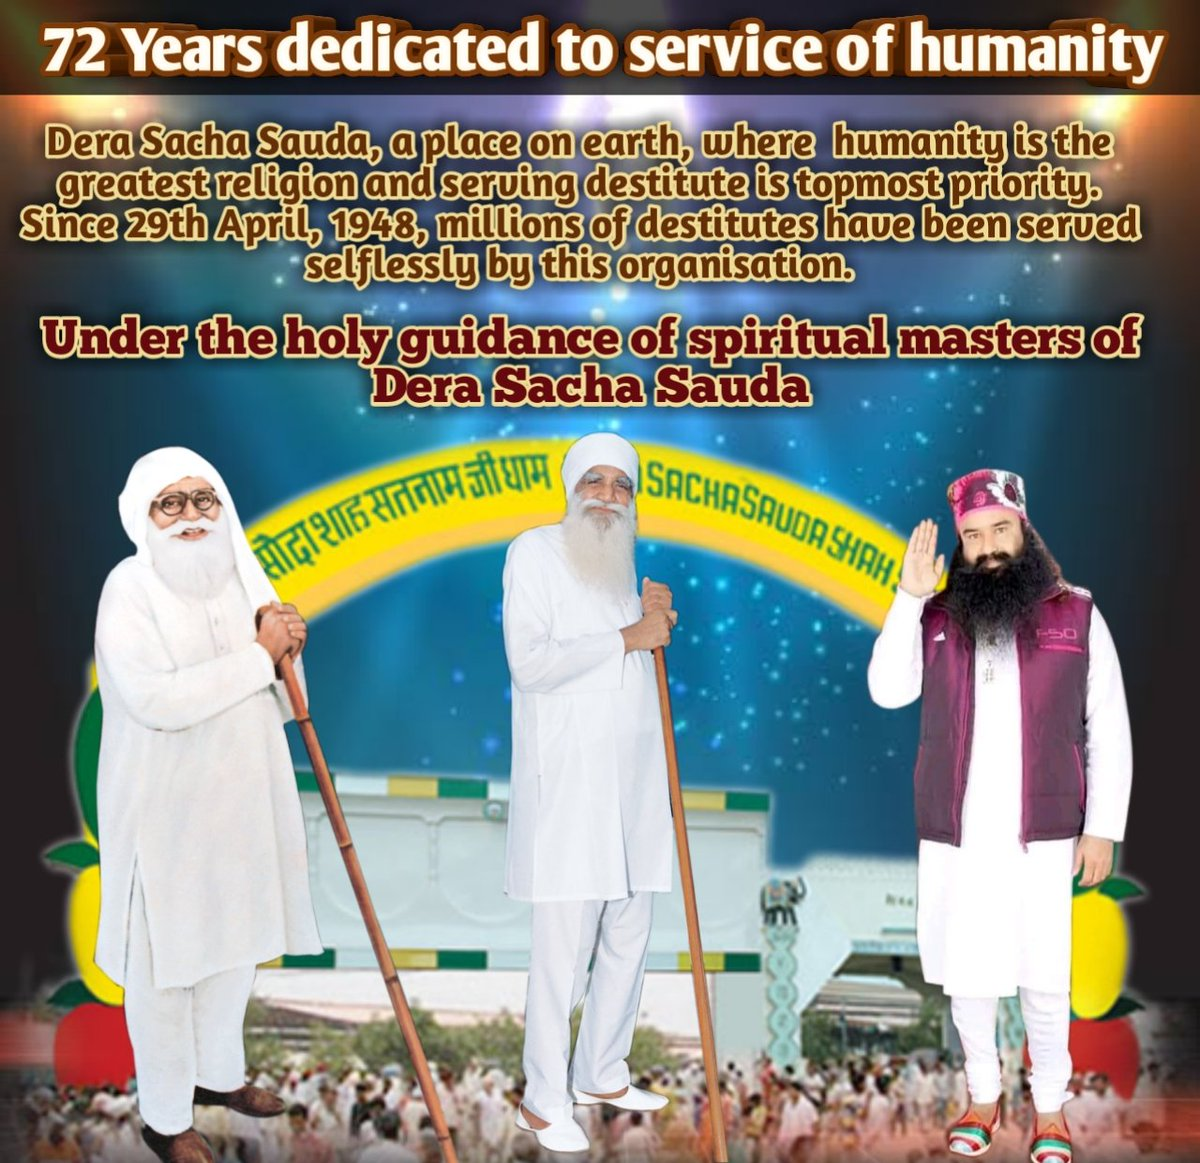 @Derasachasauda will complete its #72YearsOfServingHumanity on 29th April, 2020. Even the beginning of the Foundation Month Of DSS filled the followers with such an immense craze that they start doing welfare works started by Saint Dr. @Gurmeetramrahim Singh Ji.pic.twitter.com/0oKnpTnHmb